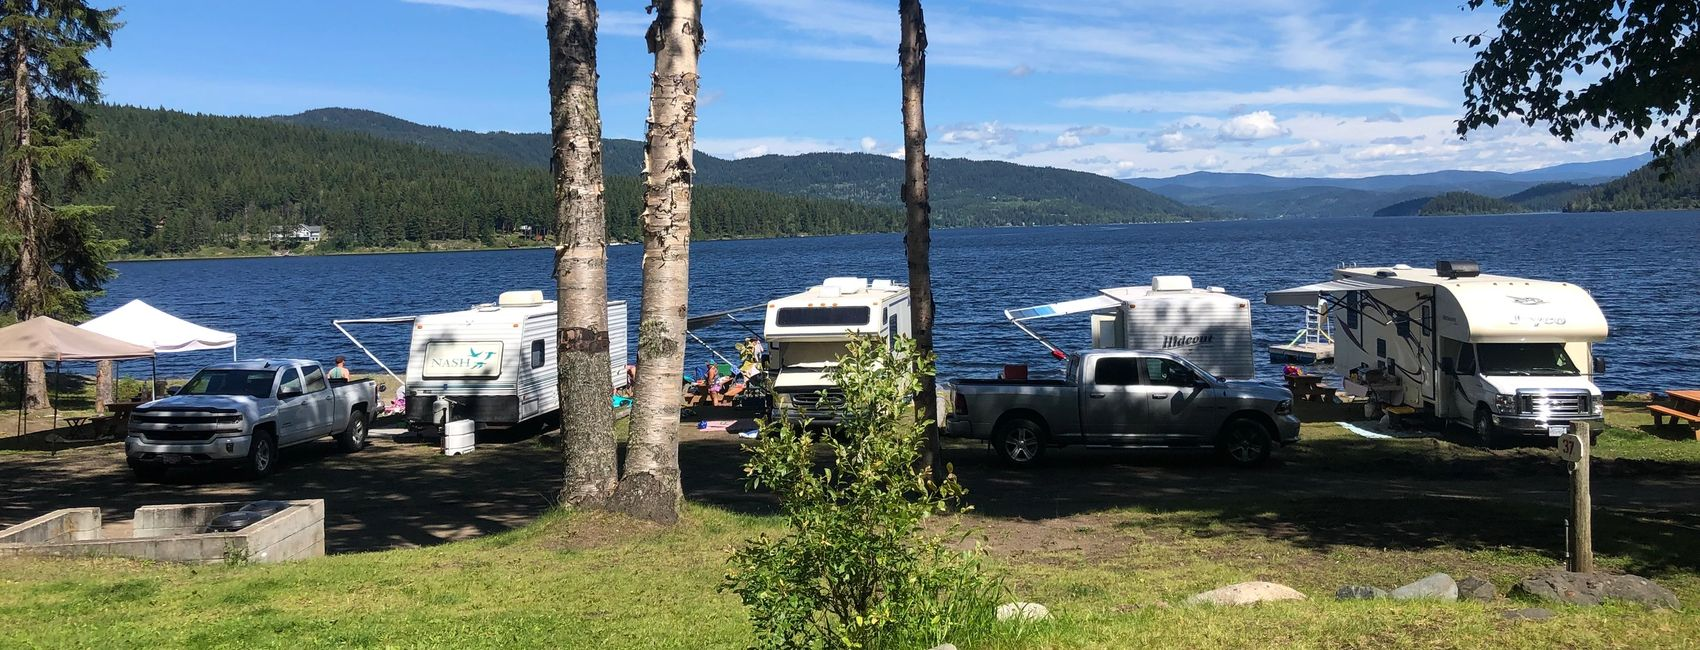 Camping and RV sites on Canim Lake, British Columbia.